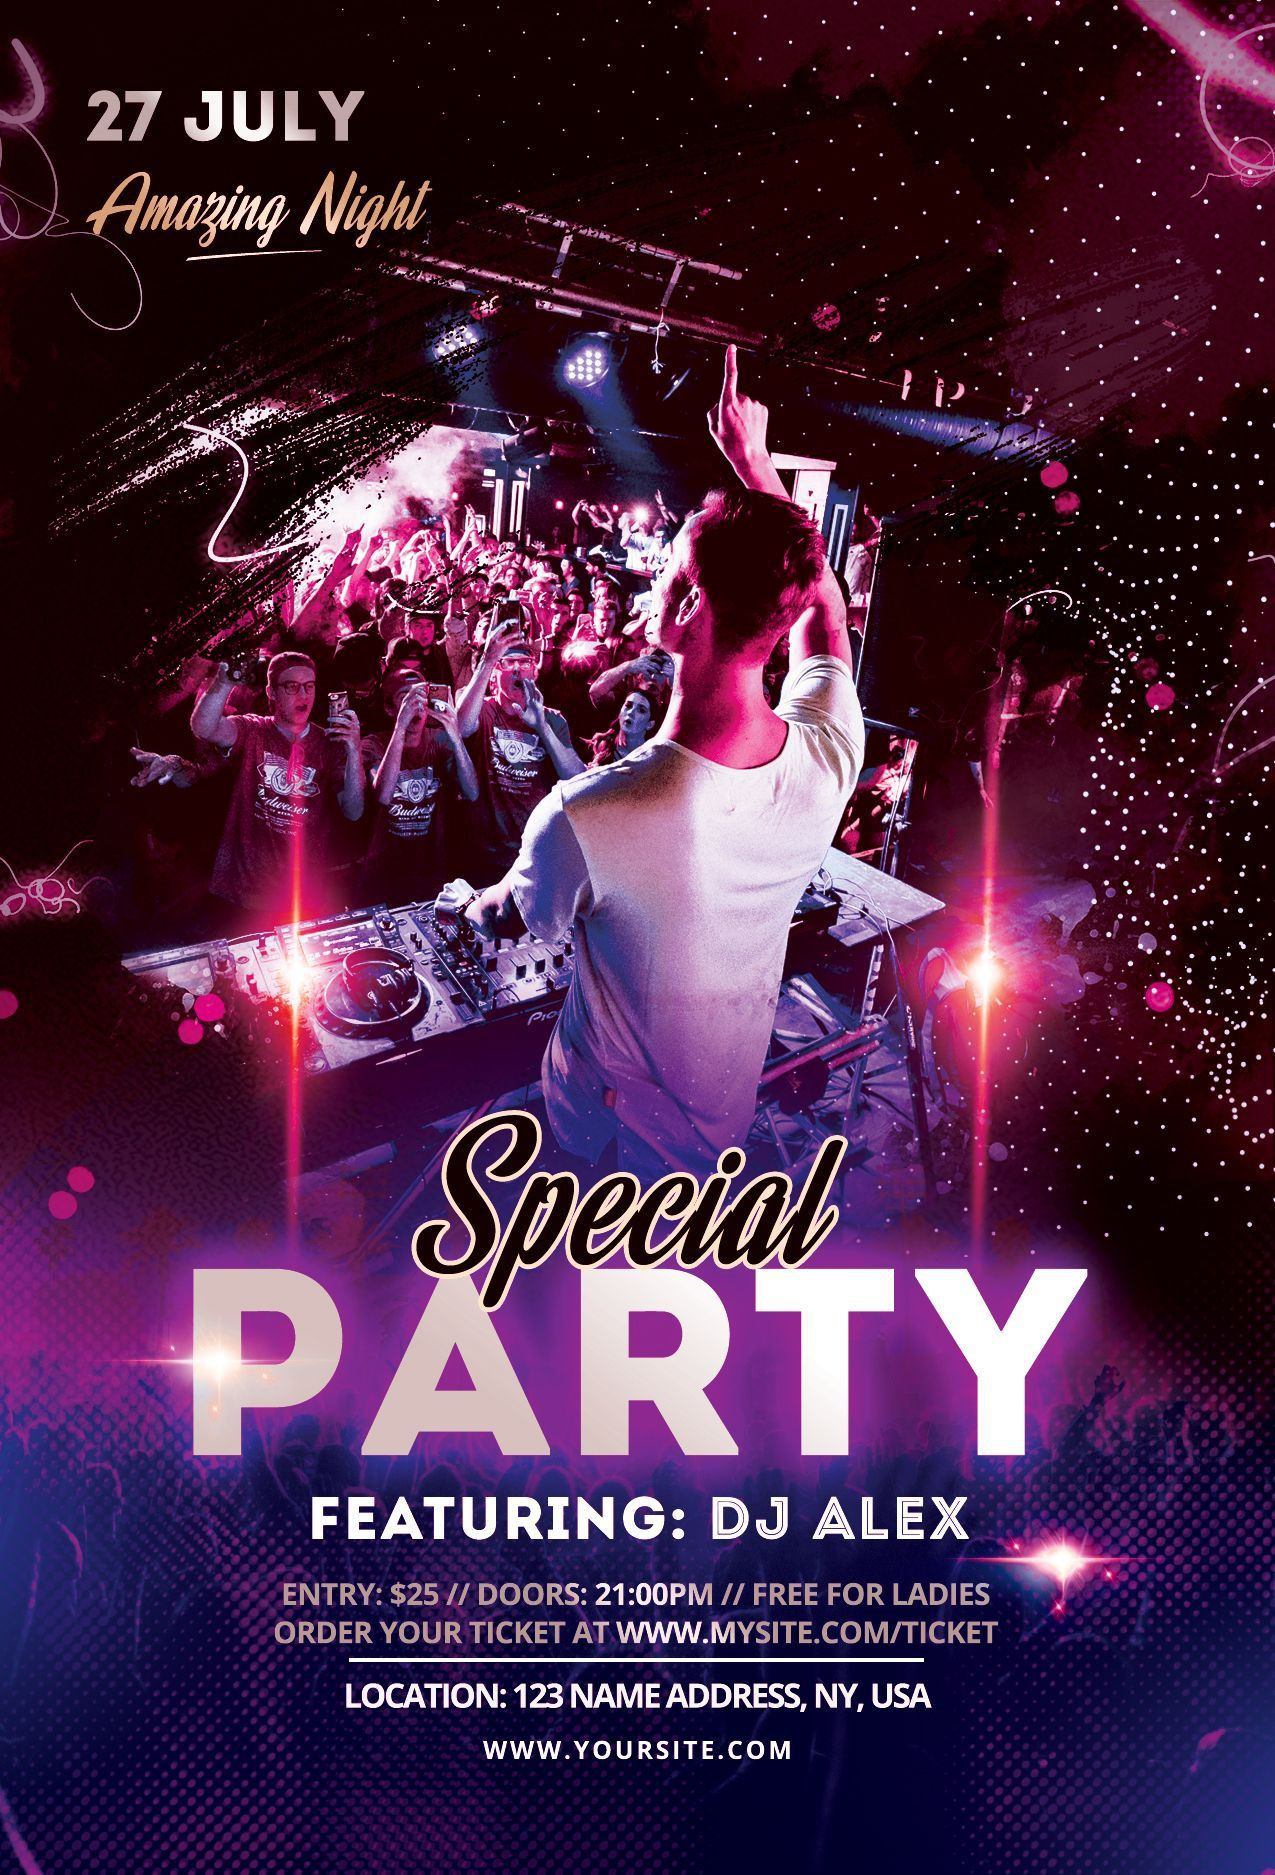 001 Incredible Party Flyer Template Free Photoshop Highest Clarity  Birthday Psd Masquerade -Full